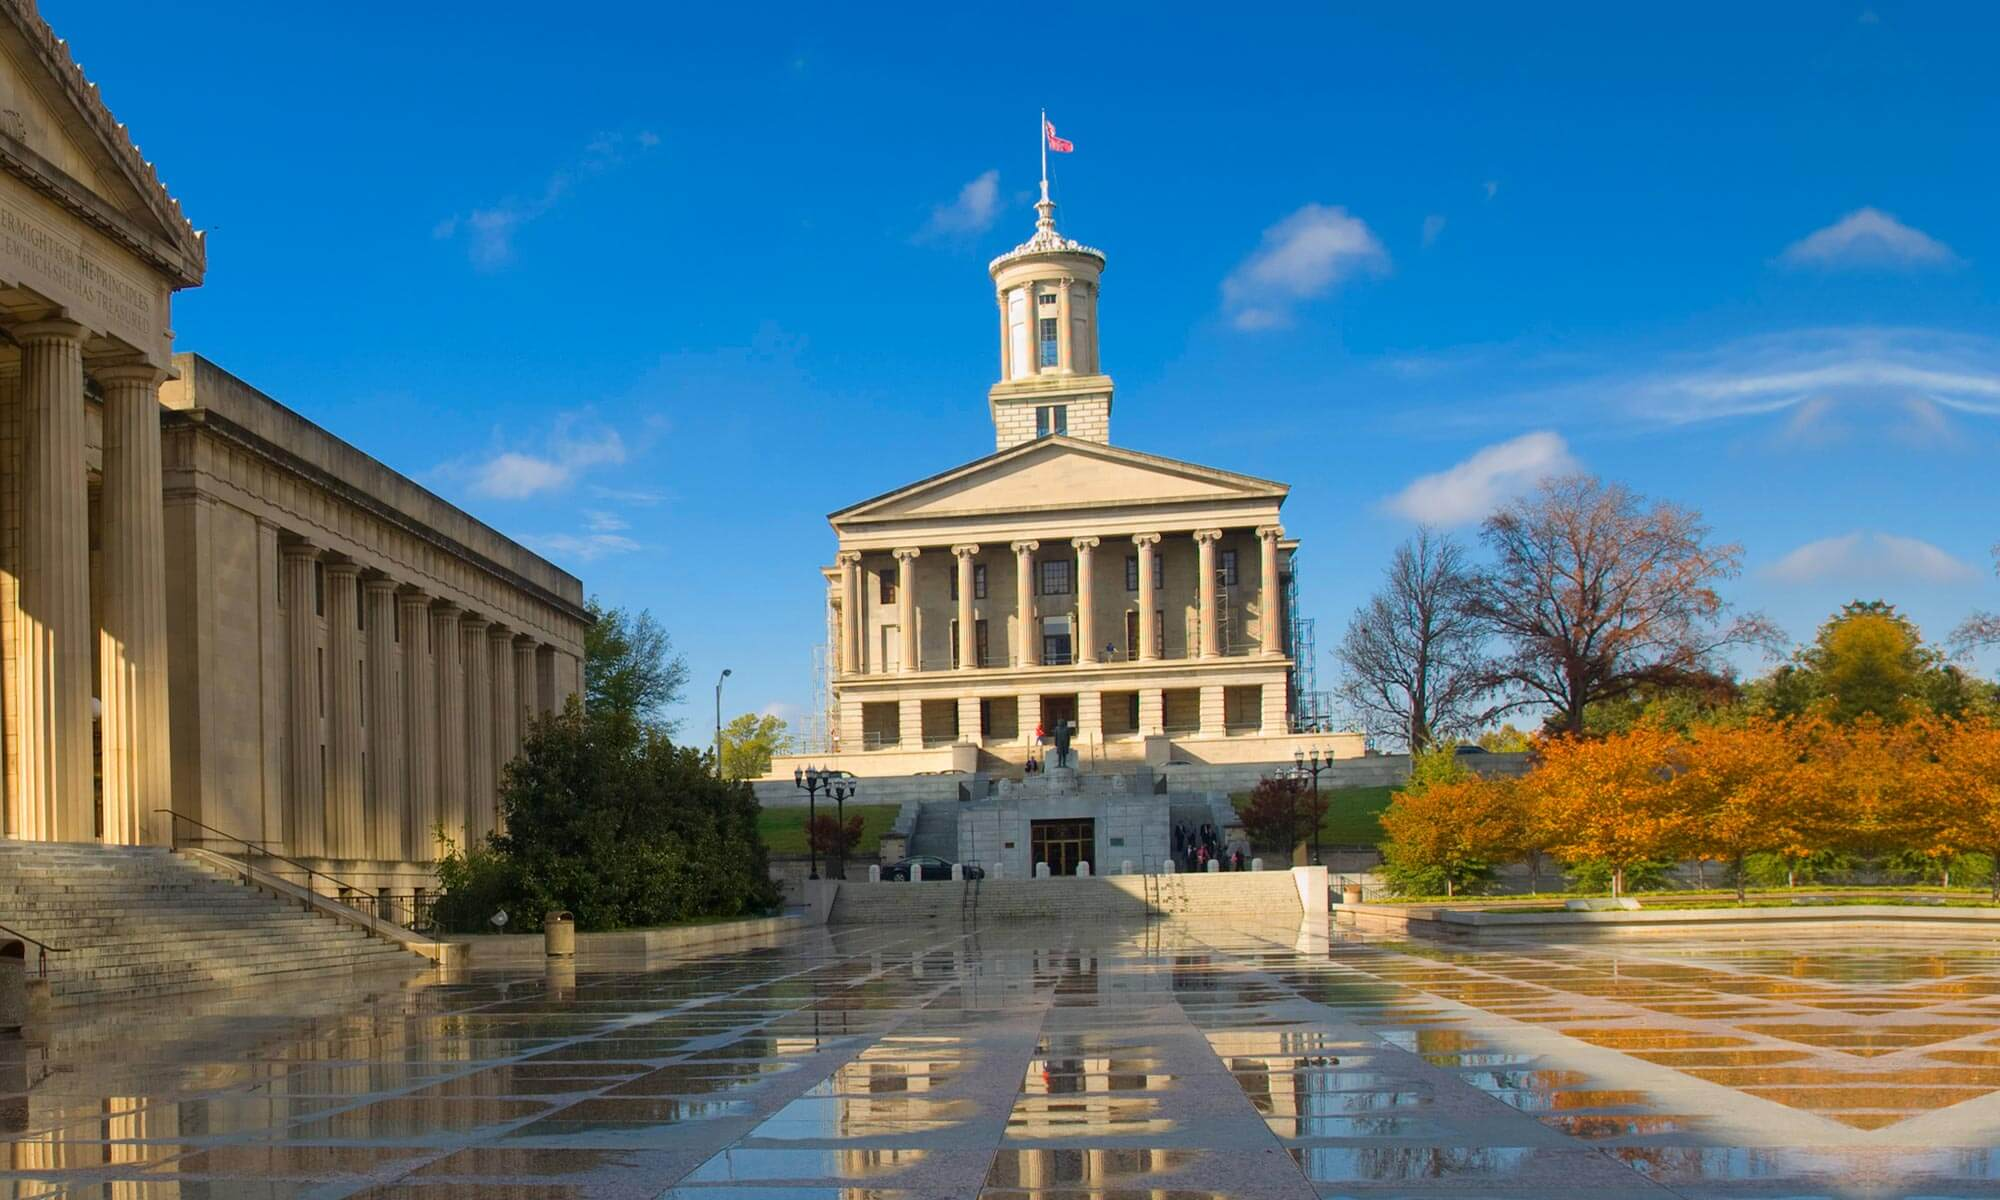 Exterior view of Tennessee State Capitol in Nashville, TN